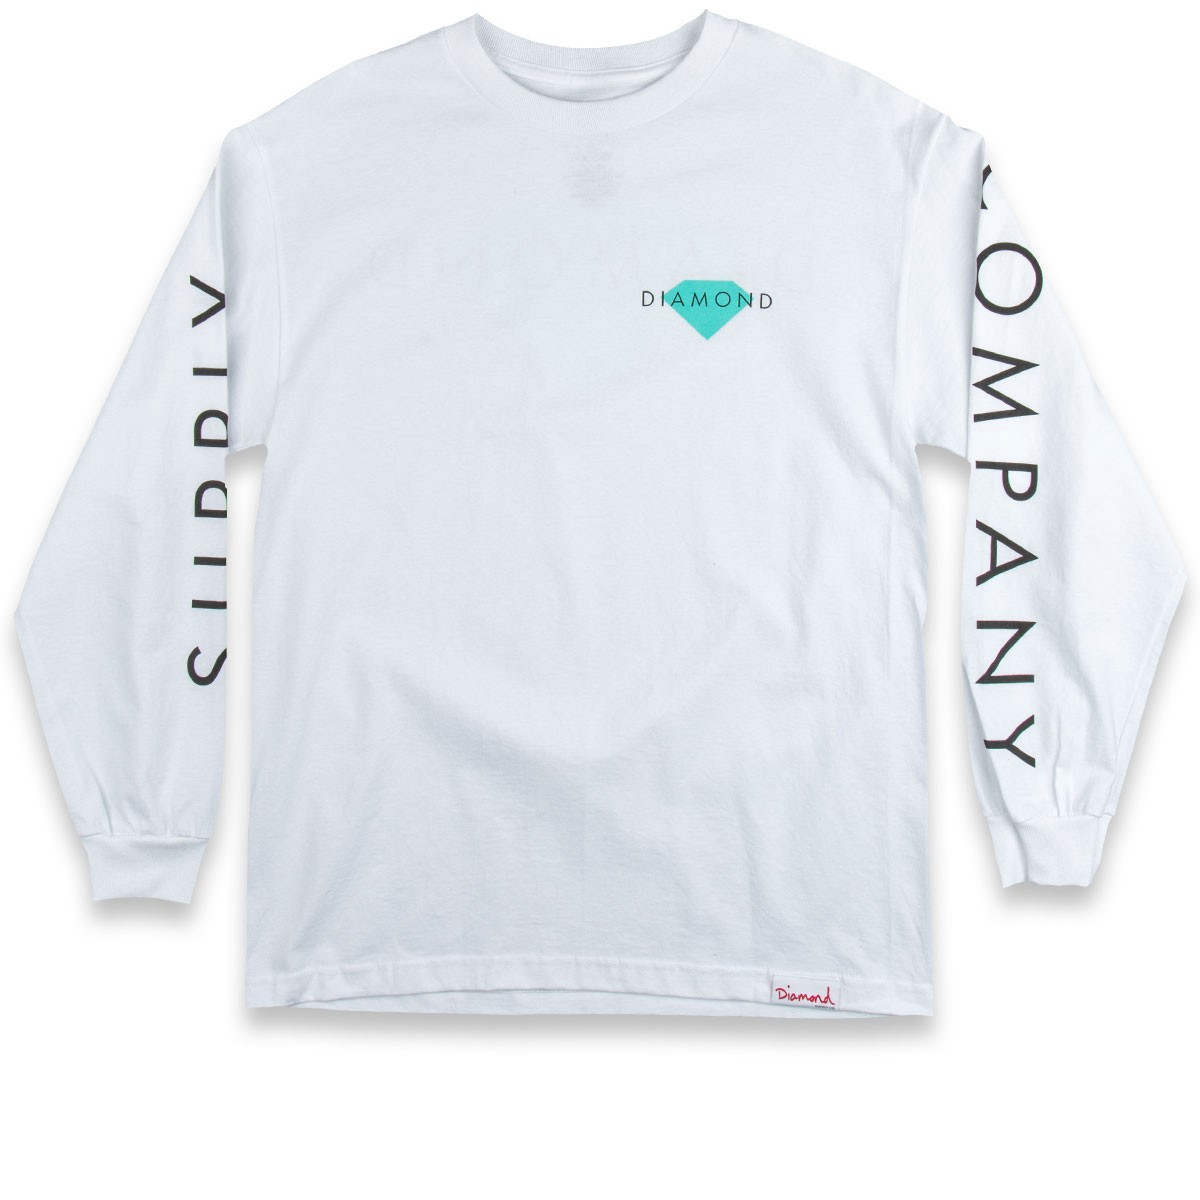 Supply Co. Diamond Solid Long Sleeve T-Shirt - White